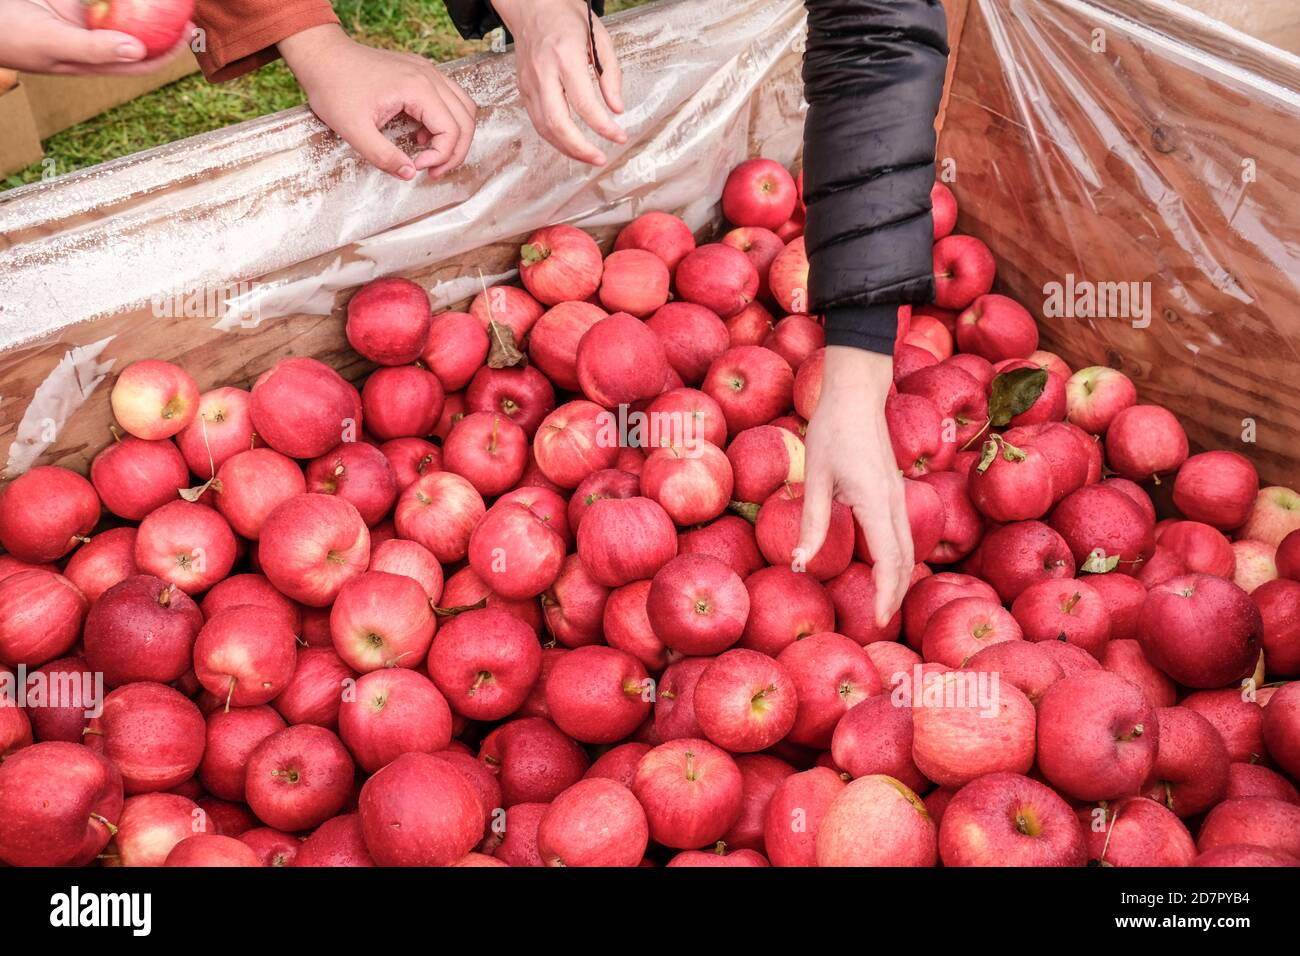 Woman picking up freshly picked gala apples at roadside fruit stand Stock Photo